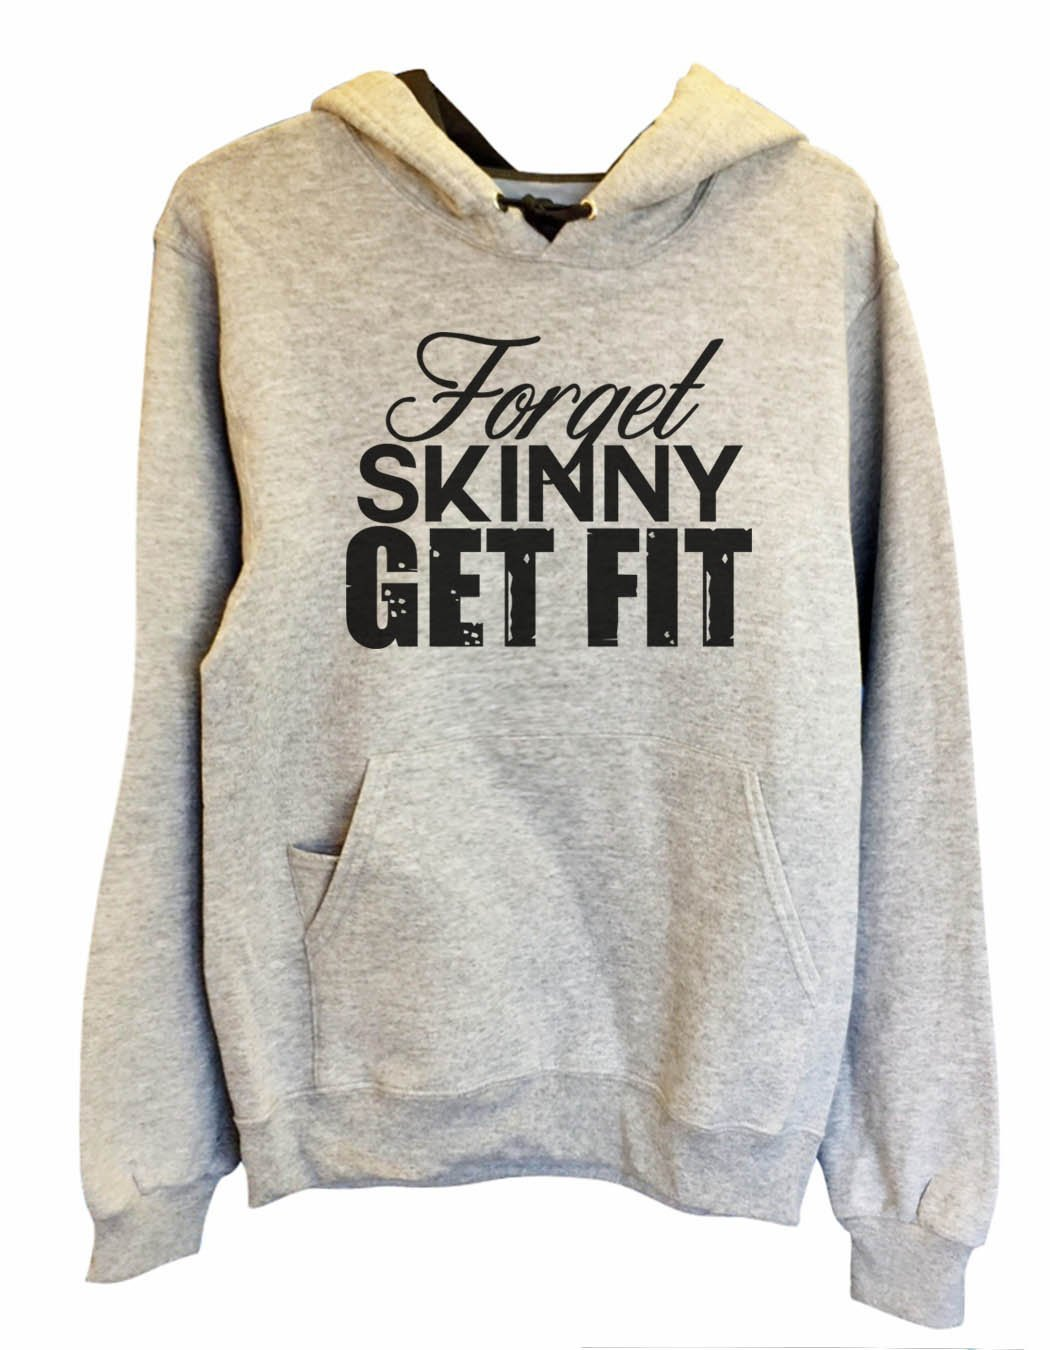 UNISEX HOODIE - Forget Skinny Get Fit - FUNNY MENS AND WOMENS HOODED SWEATSHIRTS - 2130 Funny Shirt Small / Heather Grey